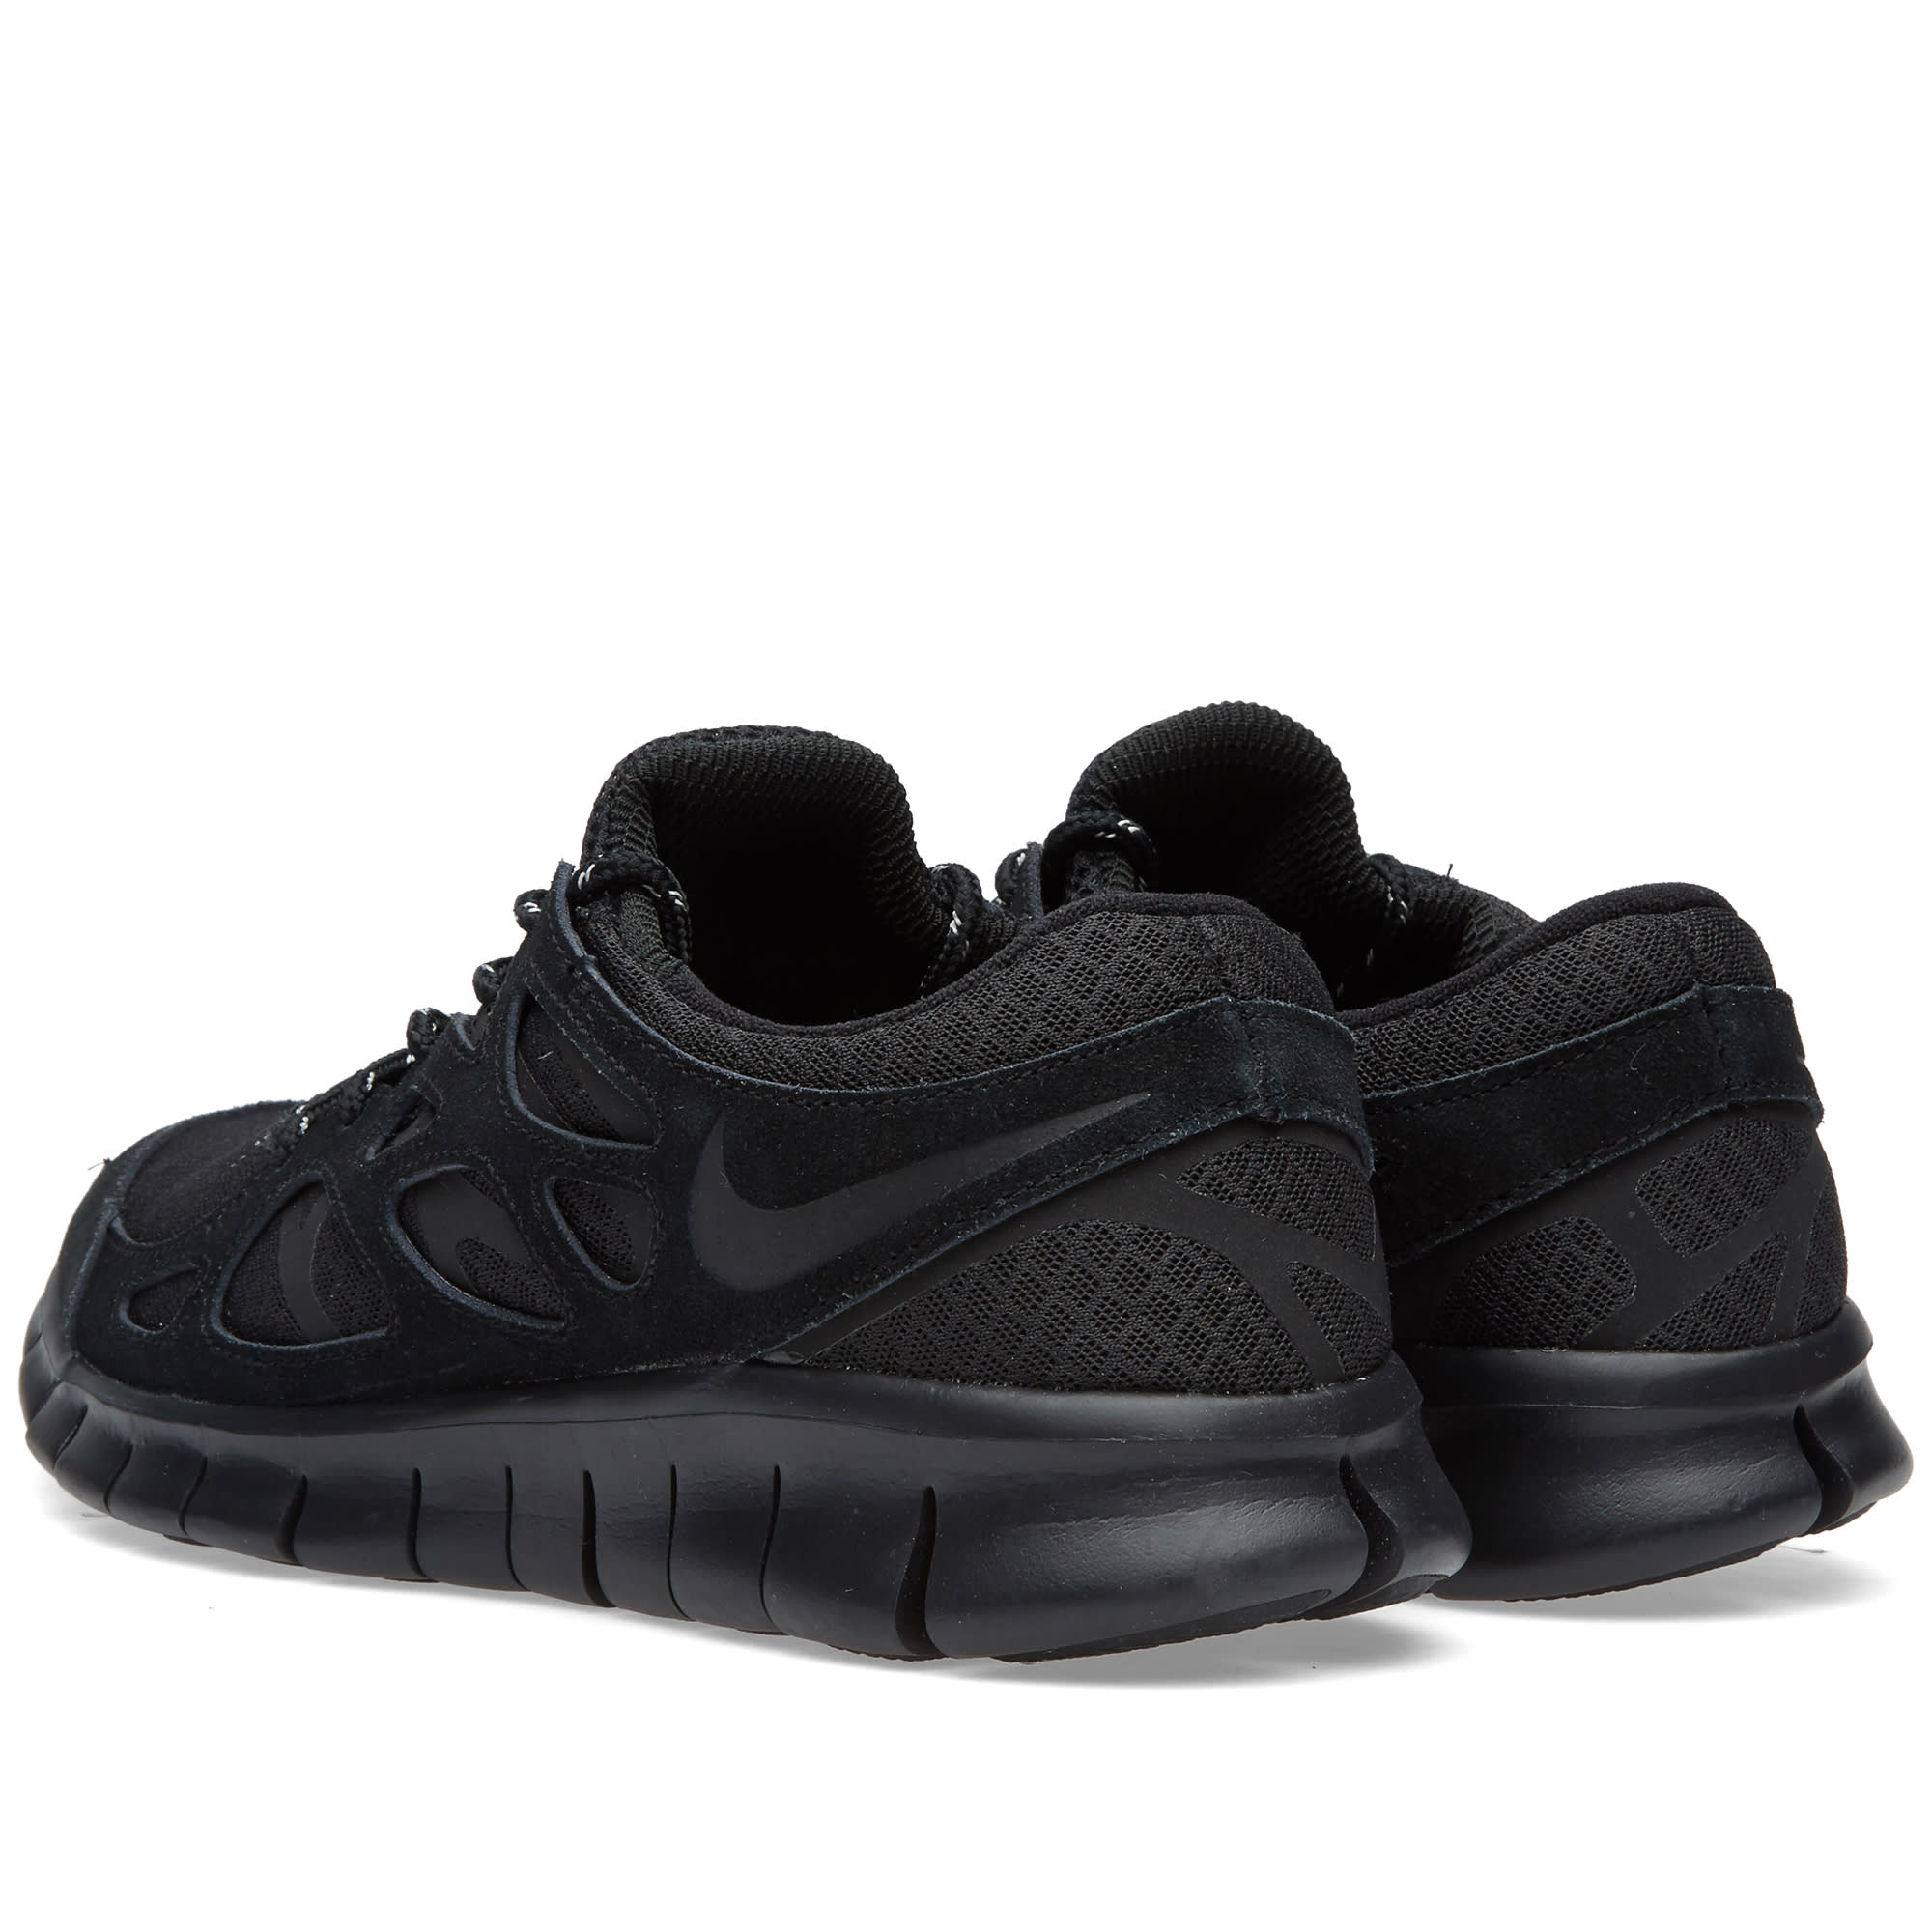 new products 6c29b 01bfb Nike Free Run 2